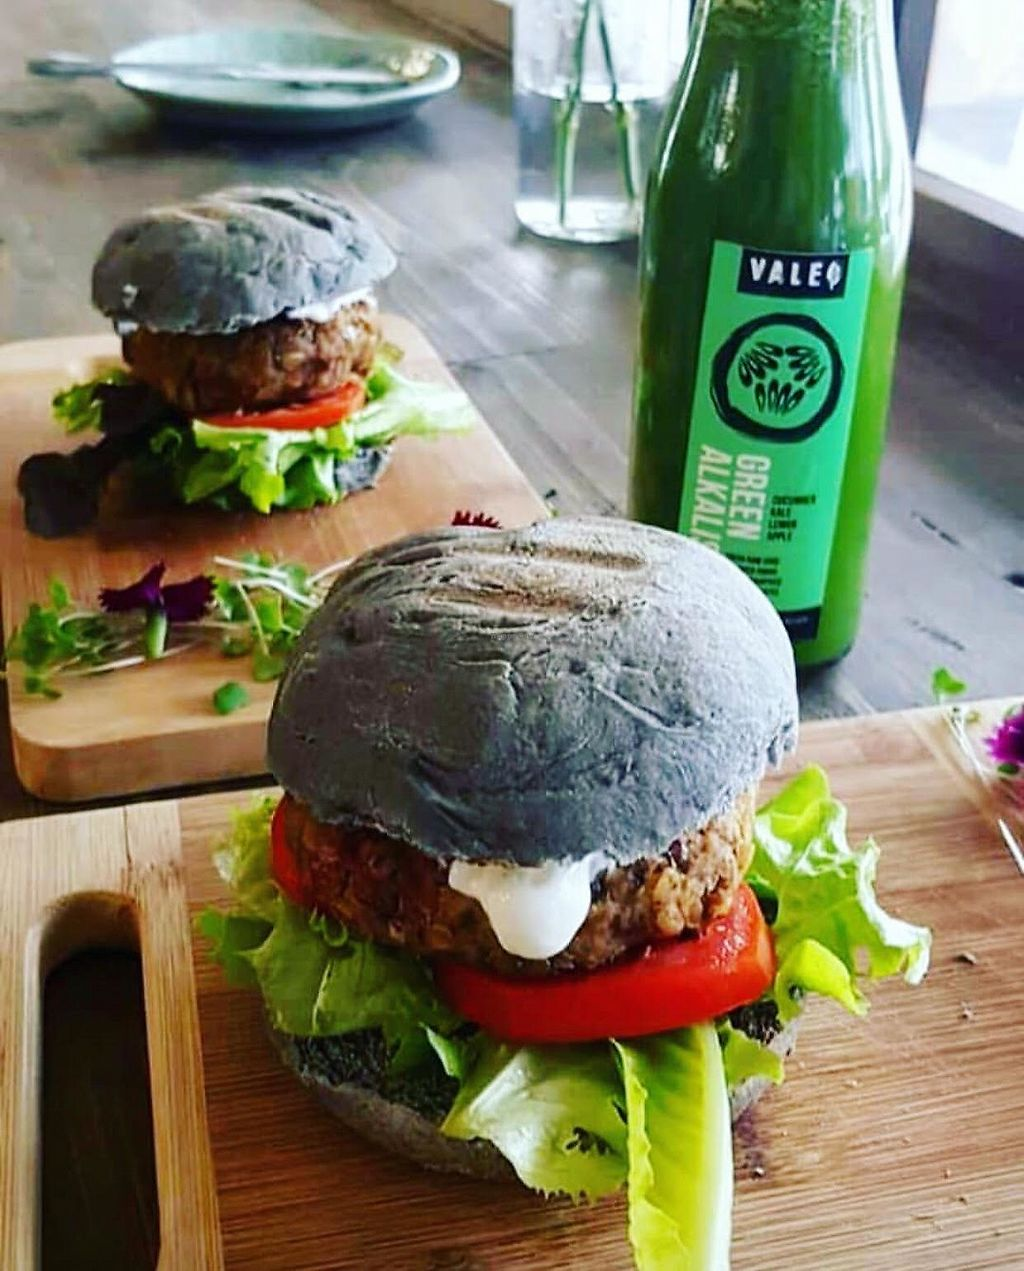 "Photo of Valeo  by <a href=""/members/profile/ThisisART"">ThisisART</a> <br/>Black burger with a meaty soy and lentil patty and vegan mayo <br/> April 20, 2018  - <a href='/contact/abuse/image/117450/388410'>Report</a>"